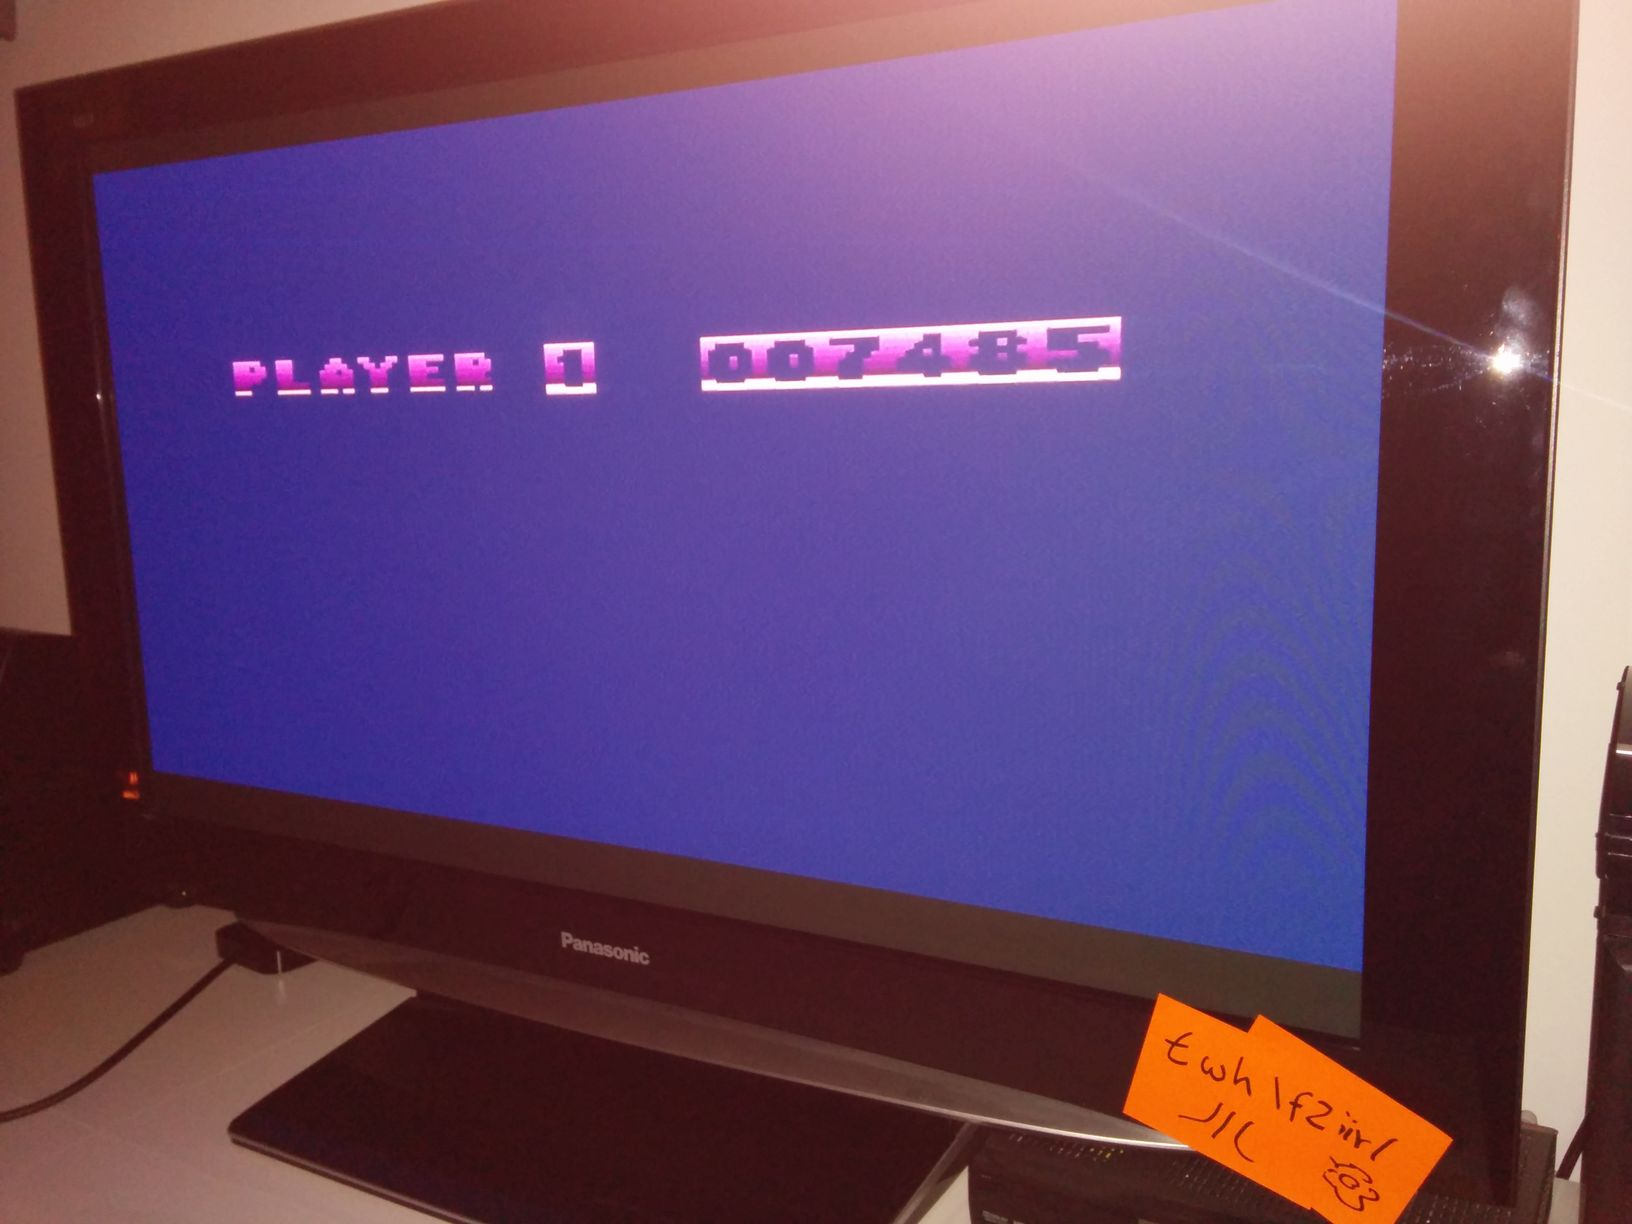 twhf2: Flip and Flop (Atari 400/800/XL/XE) 7,485 points on 2014-05-05 16:38:30